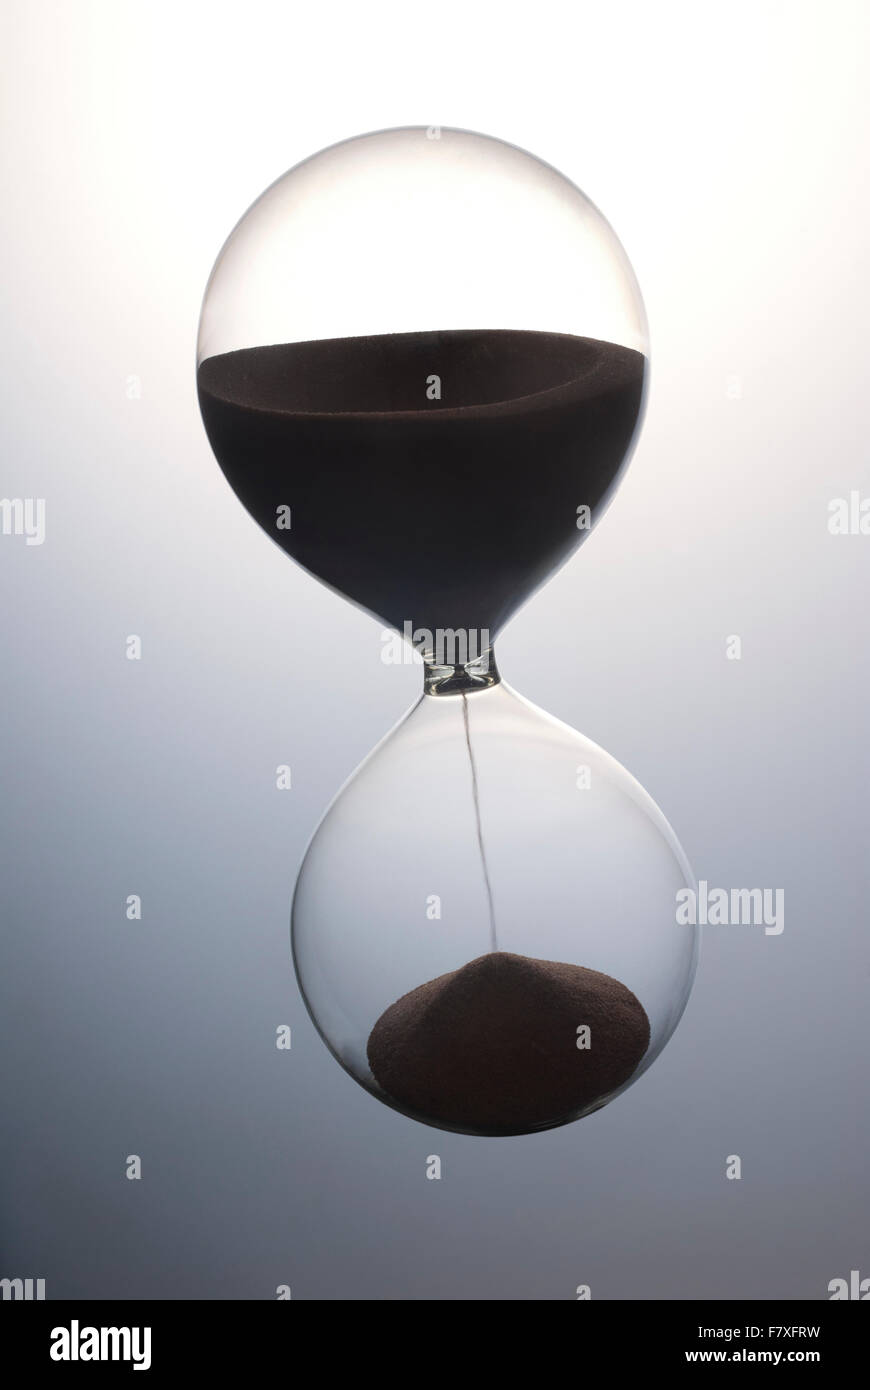 An hour-glass timer full of sand - Stock Image